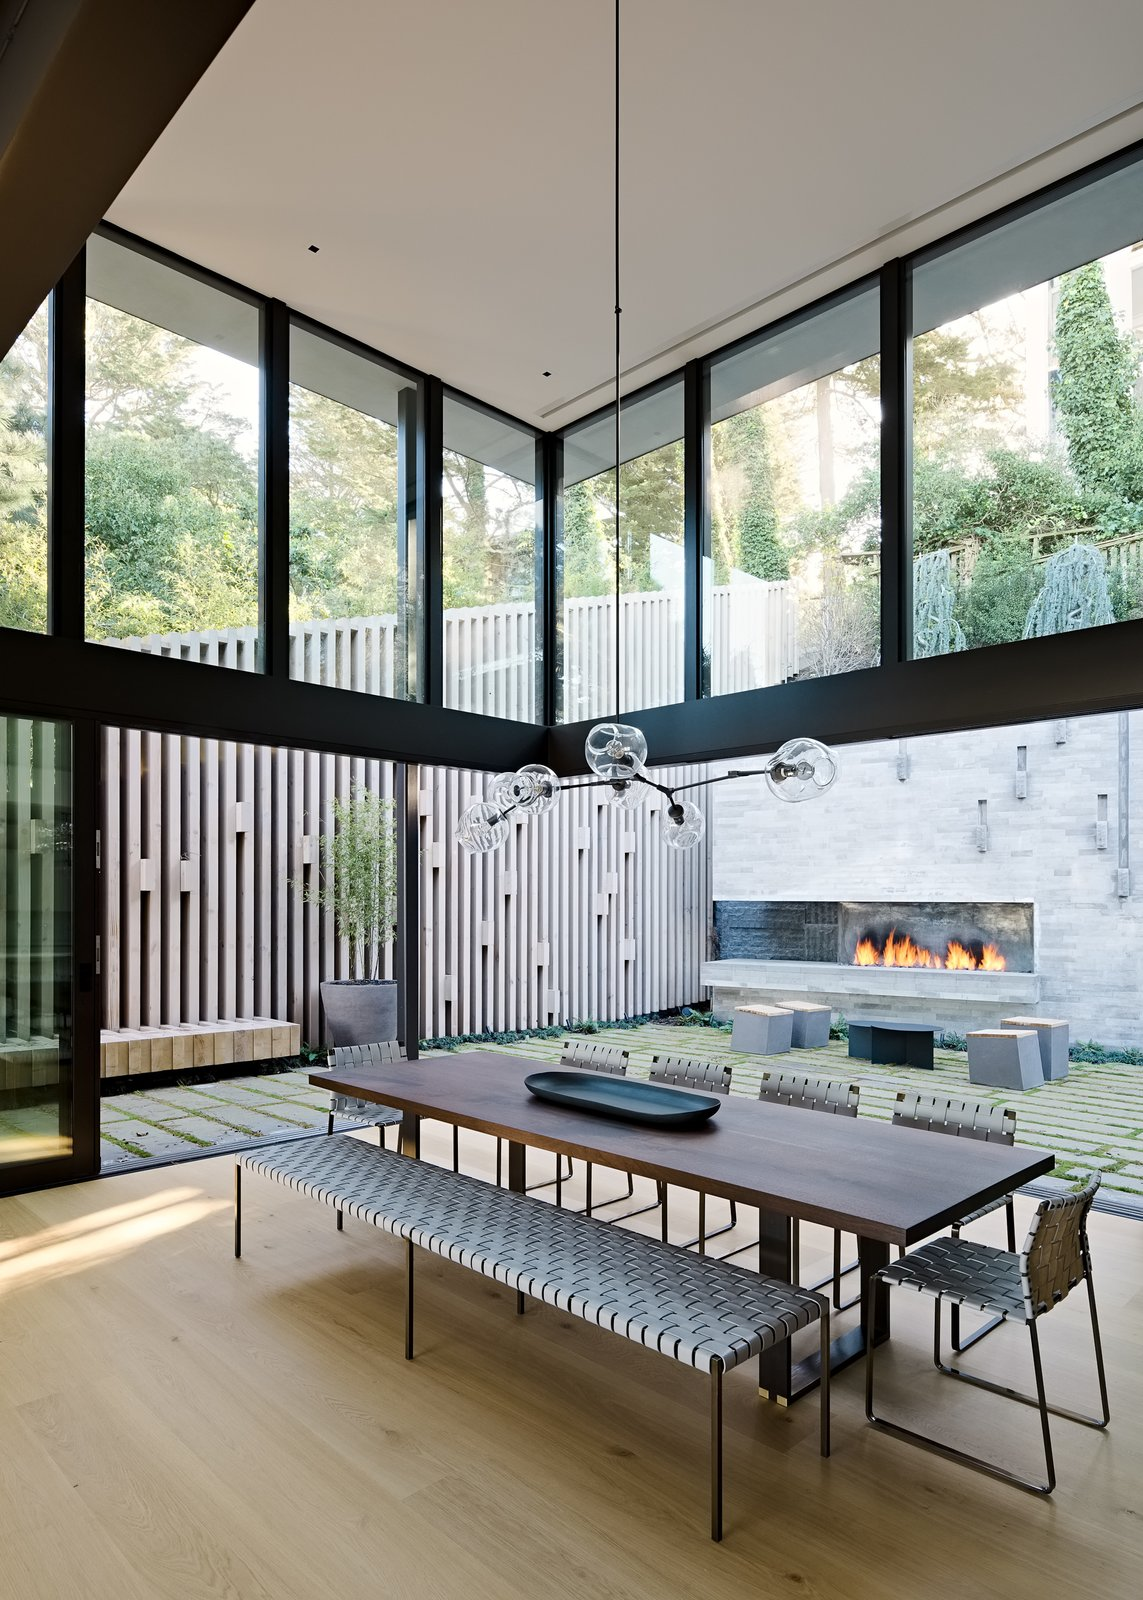 "Dining, Ribbon, Table, Chair, Pendant, Bench, Light Hardwood, Corner, and Gas Burning The double-height, fully glazed volume at the home's rear ""brings significant light into the home, while simultaneously creating a moment to experience the verticality of the surrounding trees which loom above the home,"" explains Maniscalco.    Best Dining Light Hardwood Gas Burning Bench Pendant Photos from A Steep, Sloping Lot Becomes a Hillside Family Oasis in San Francisco"